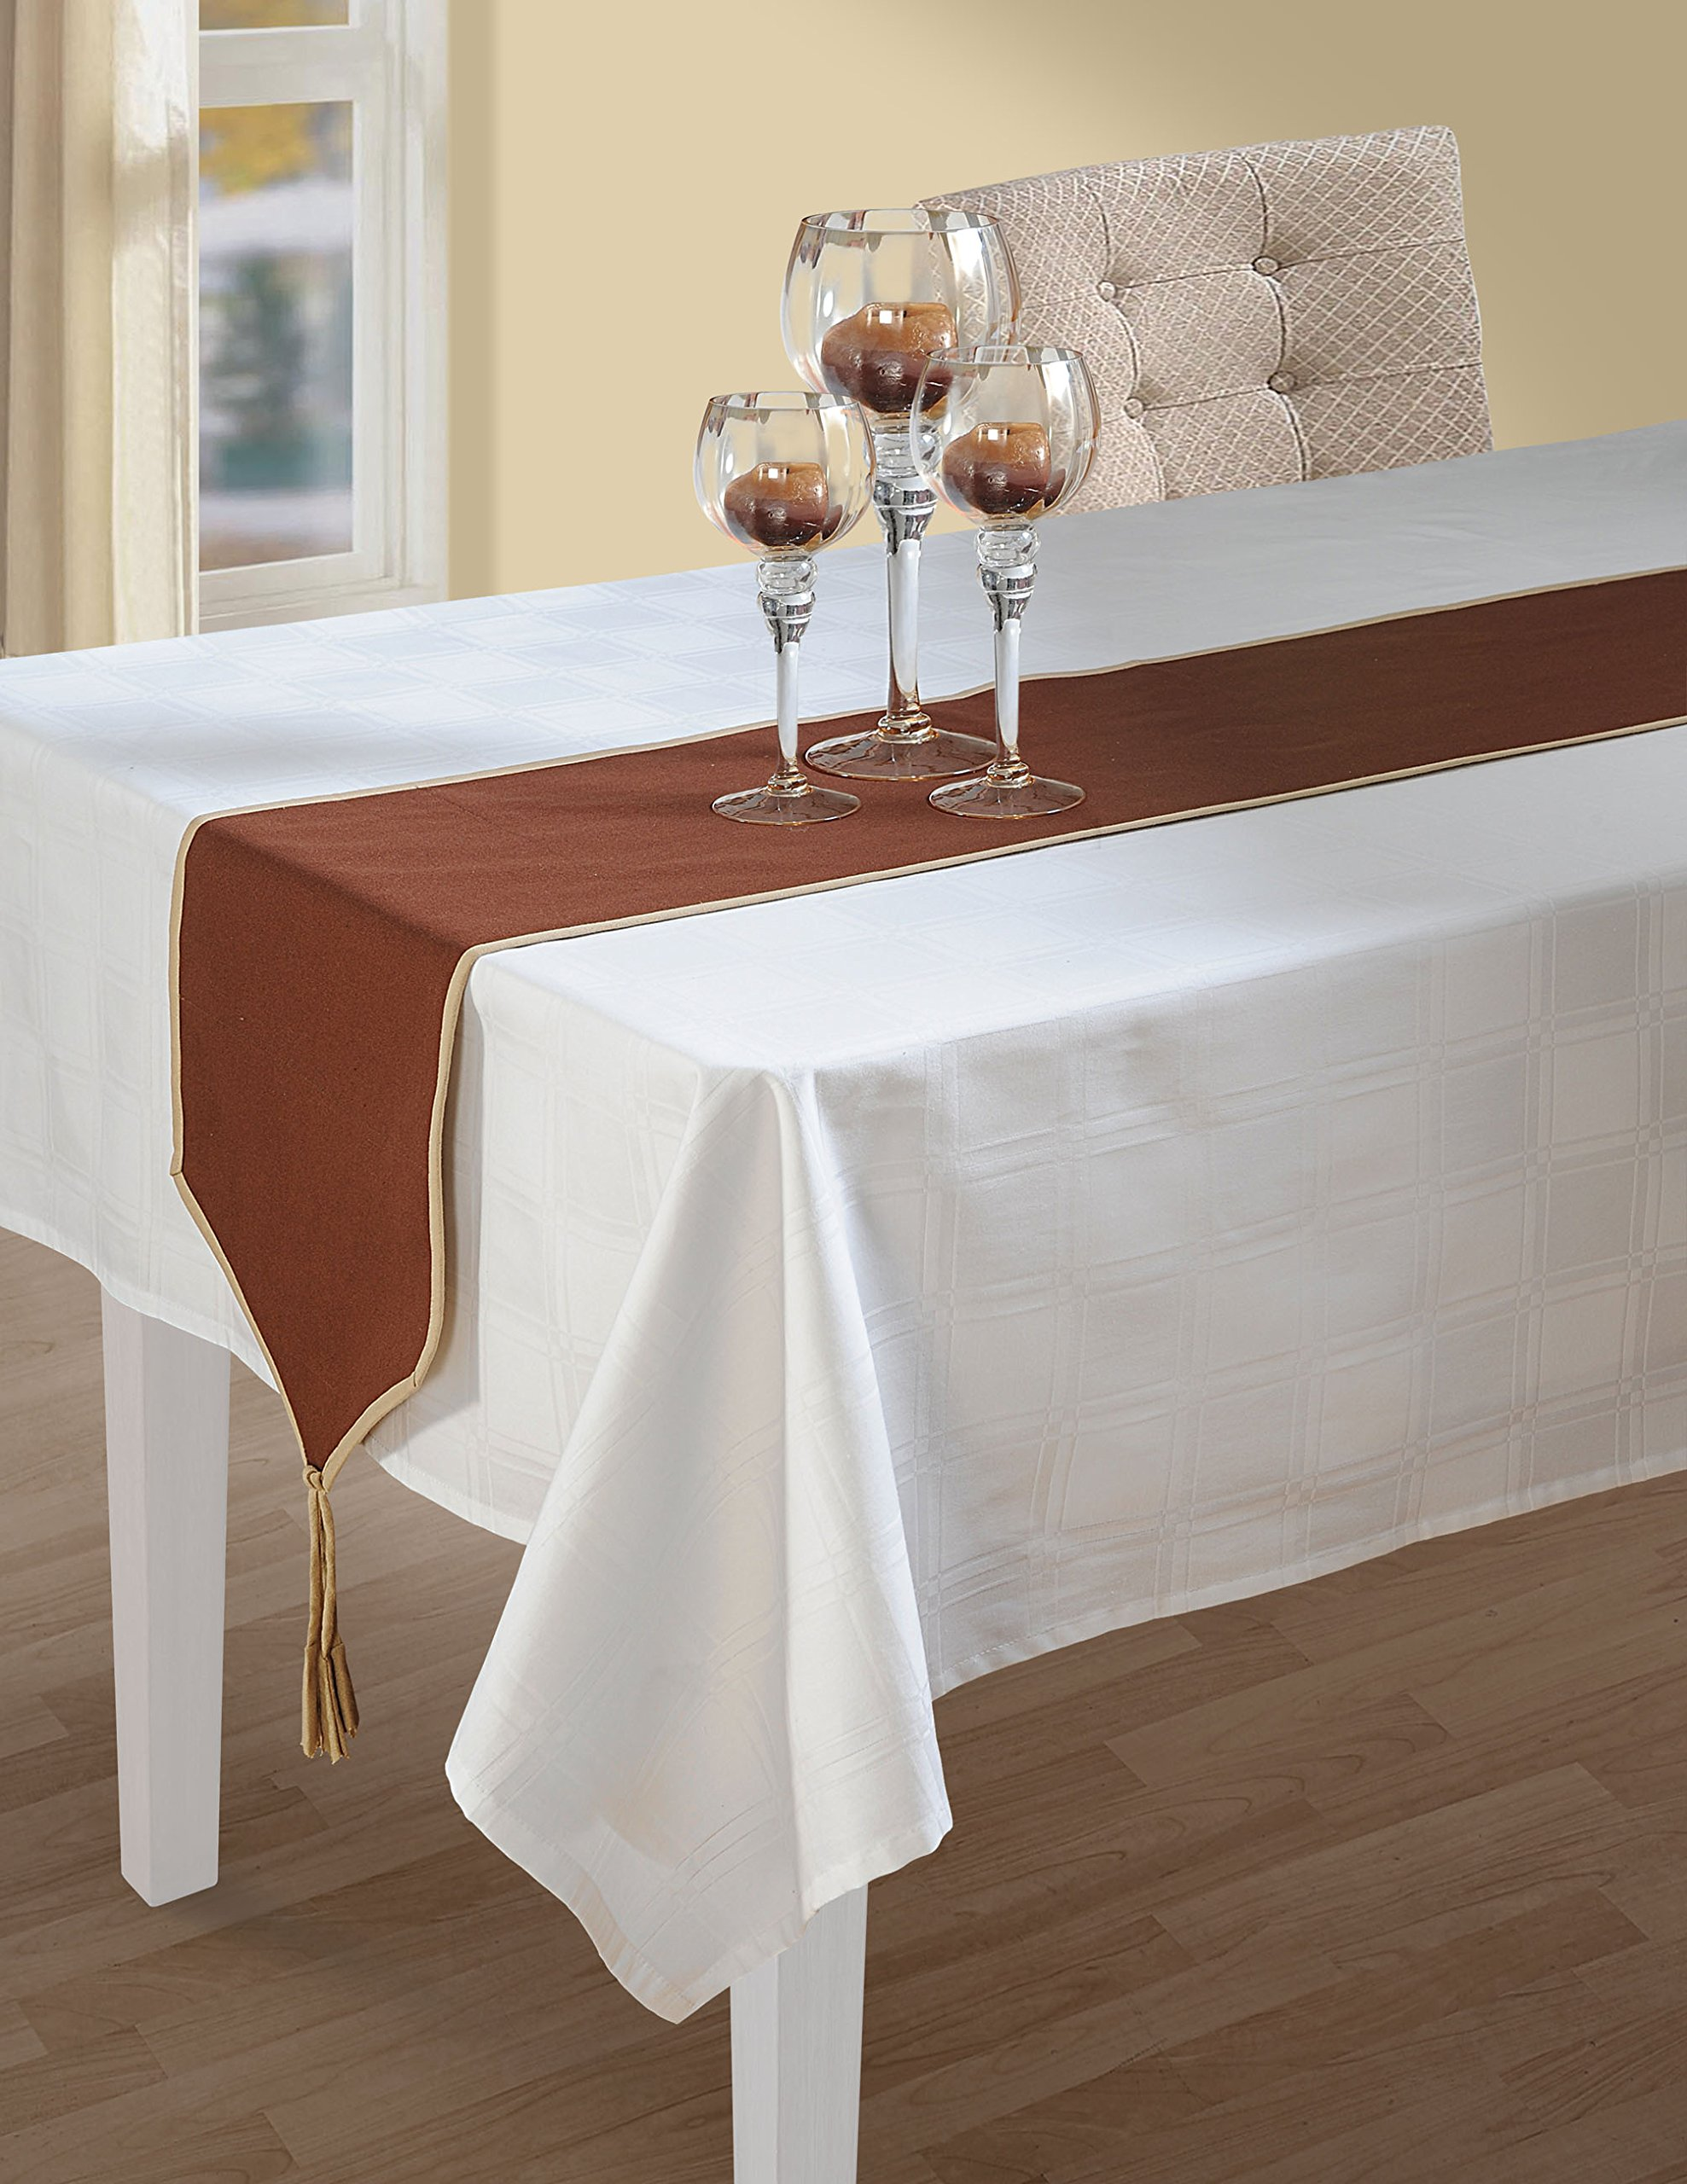 ShalinIndia 2 Tone Chocolate Brown And Beige Table Runner Cotton Duck - 13 x 72 Inch - Machine Washable - Made in India